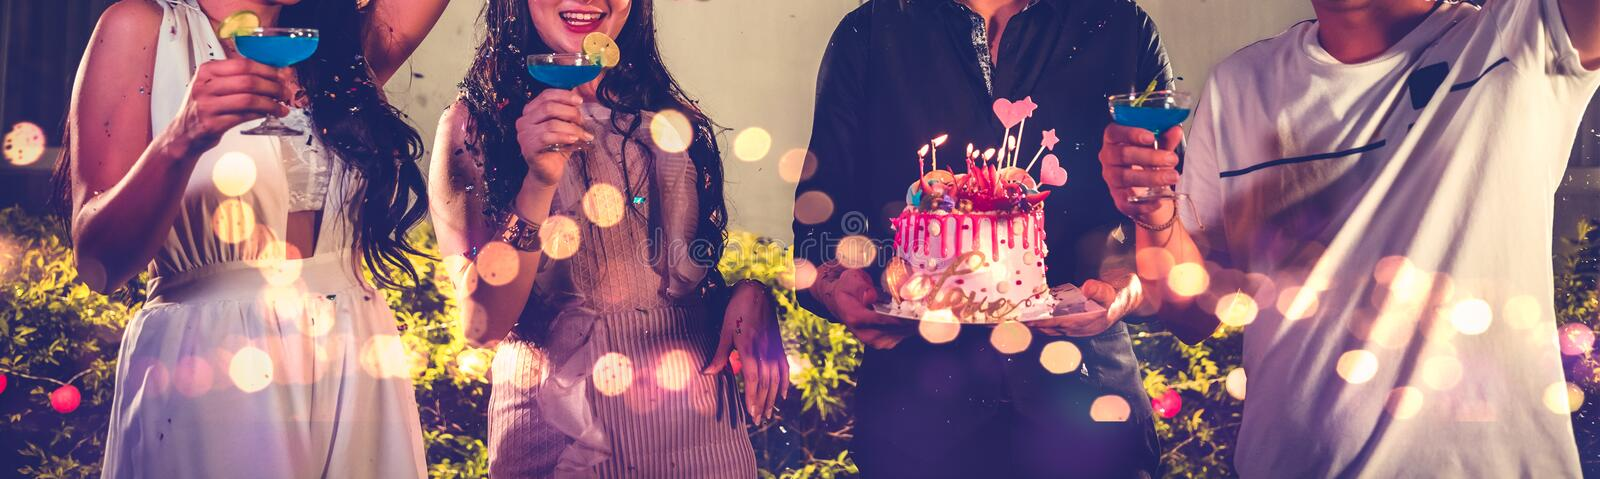 Closeup lower body friends group having outdoor birthday party at night club with birthday cake. Event and anniversary concept. royalty free stock image